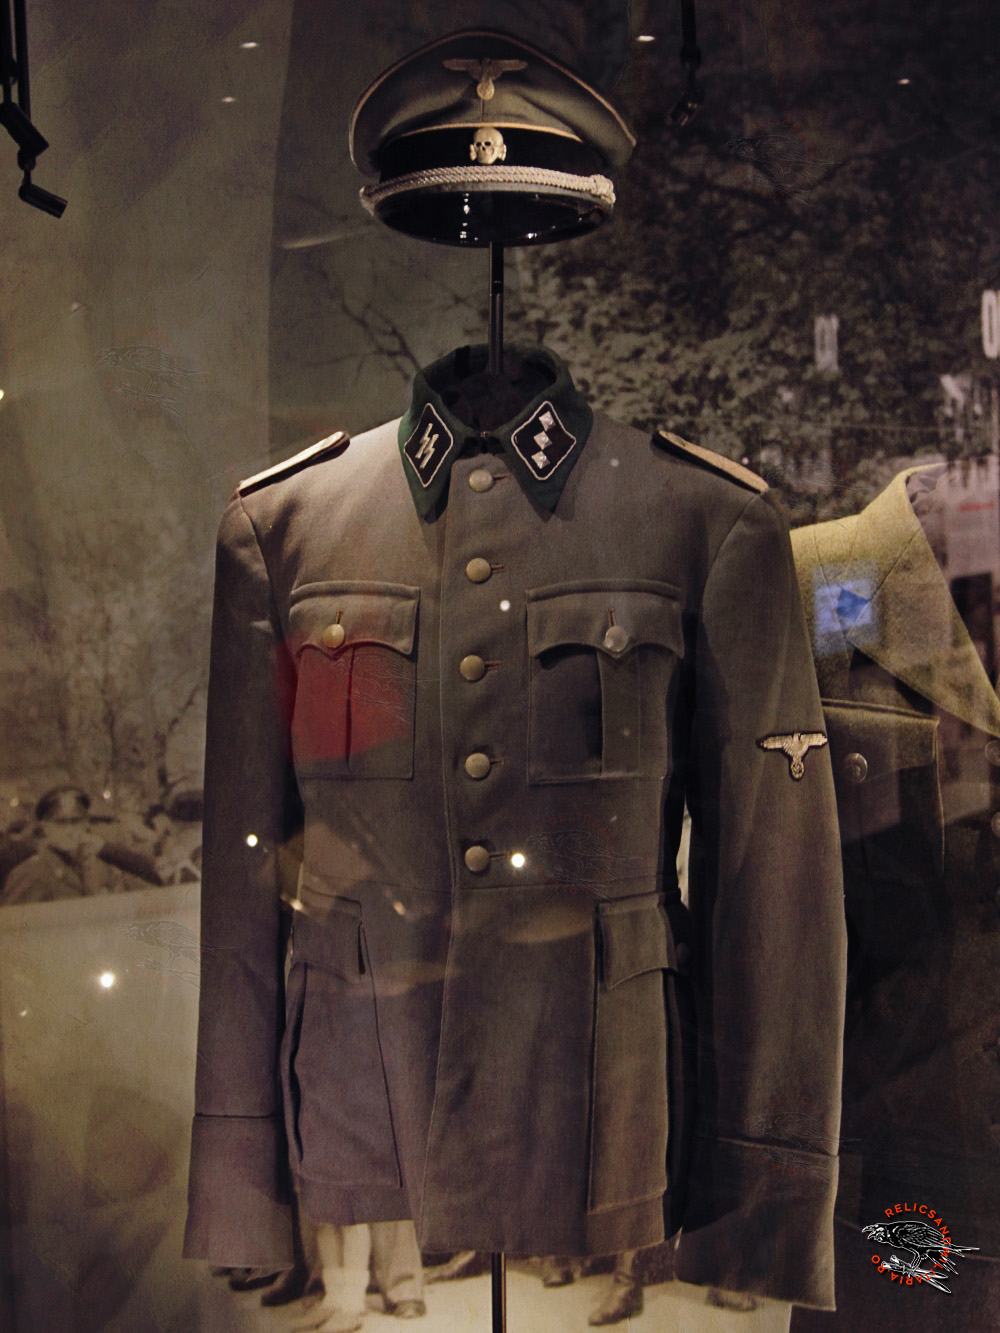 21 SS officer uniform